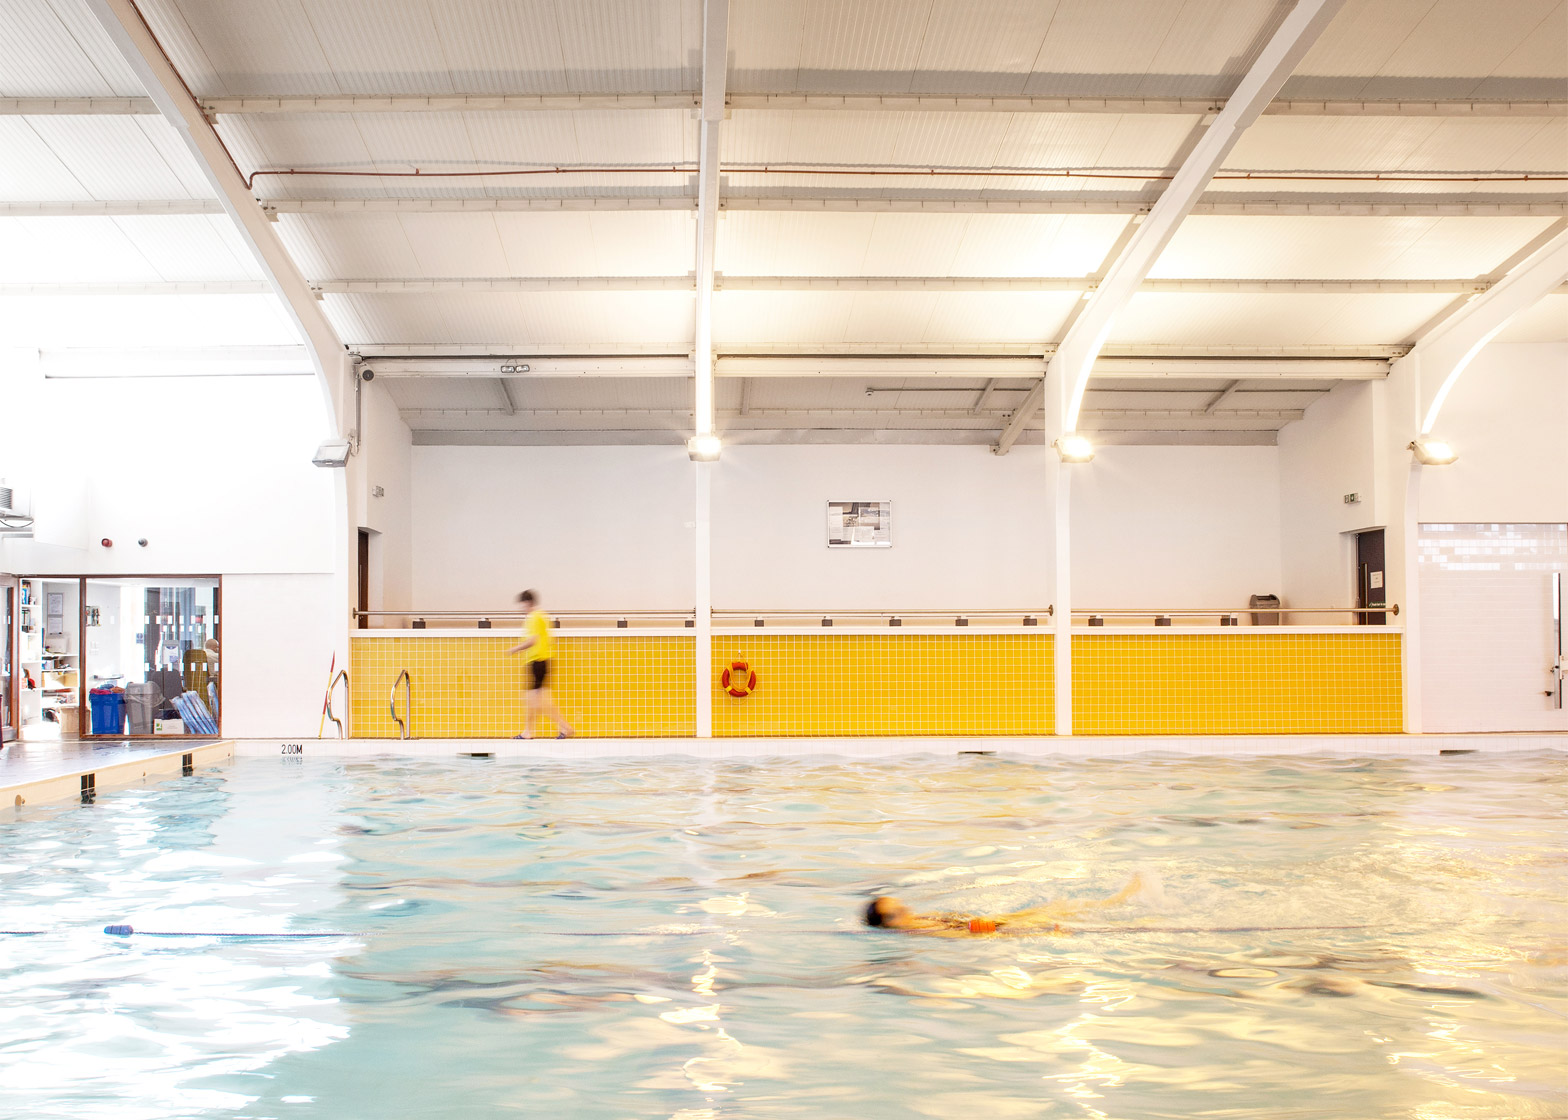 nenagh-leisure-centre-town-park-abk-architects-county-tipperary-ireland-swimming-pool_dezeen_1568_5